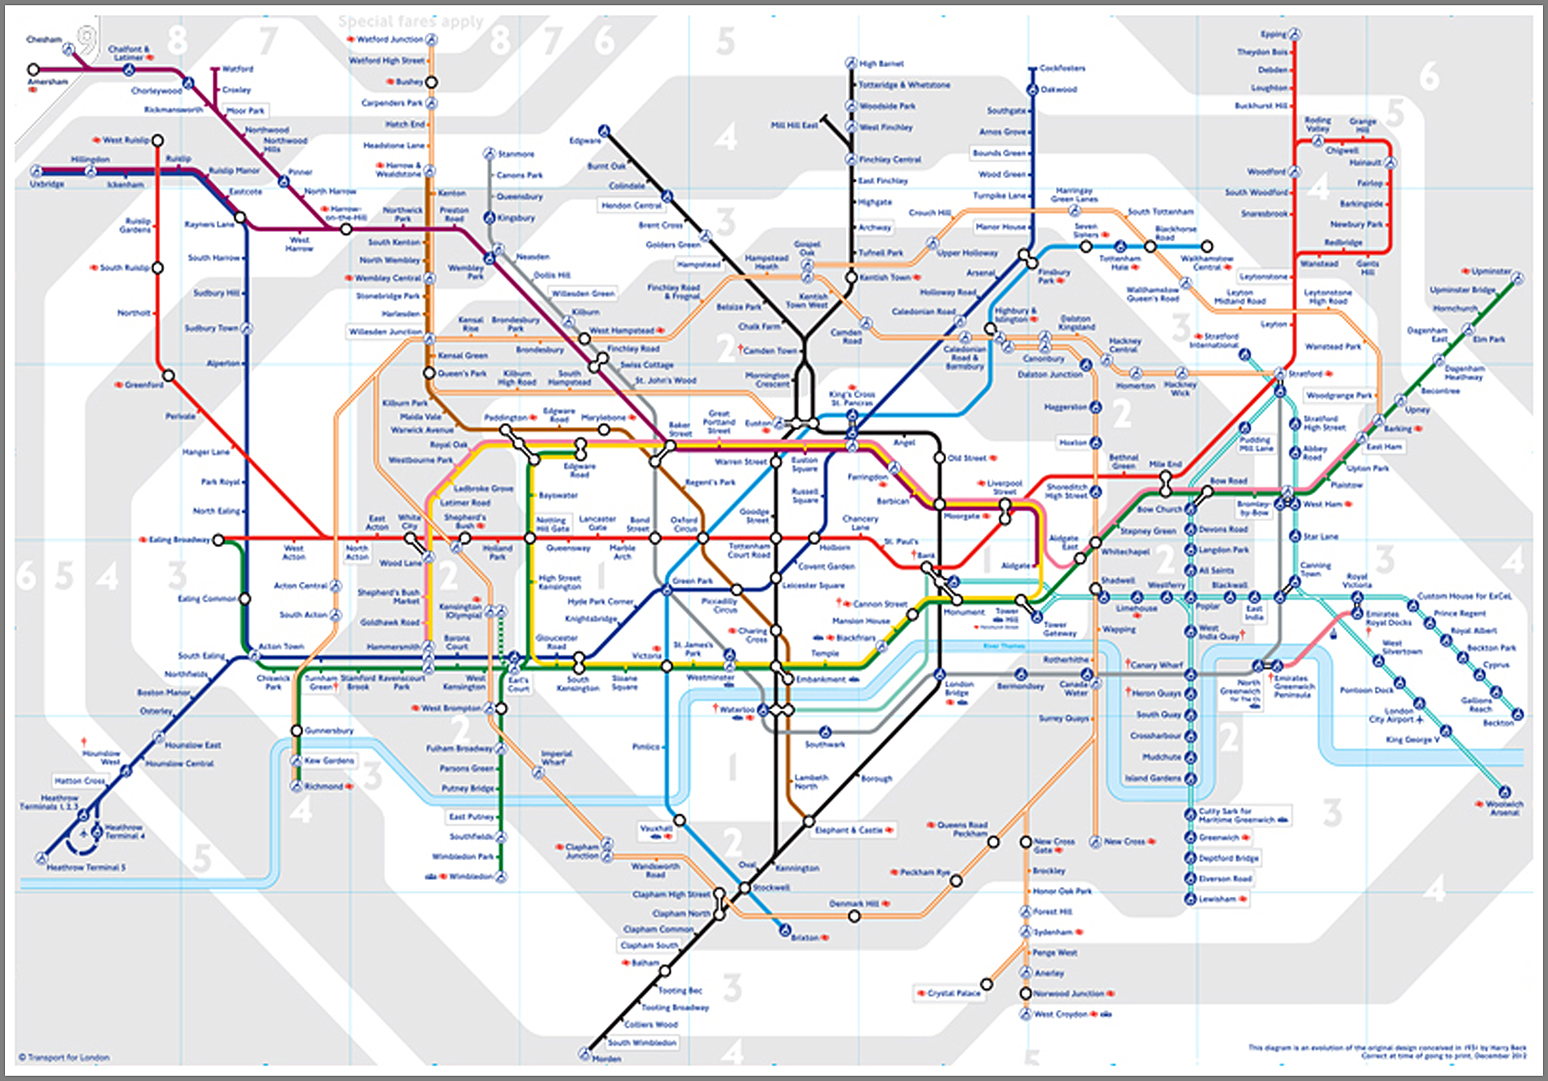 London Underground Map from Grace Scurr Filofax Janet Carr – London Underground System Map